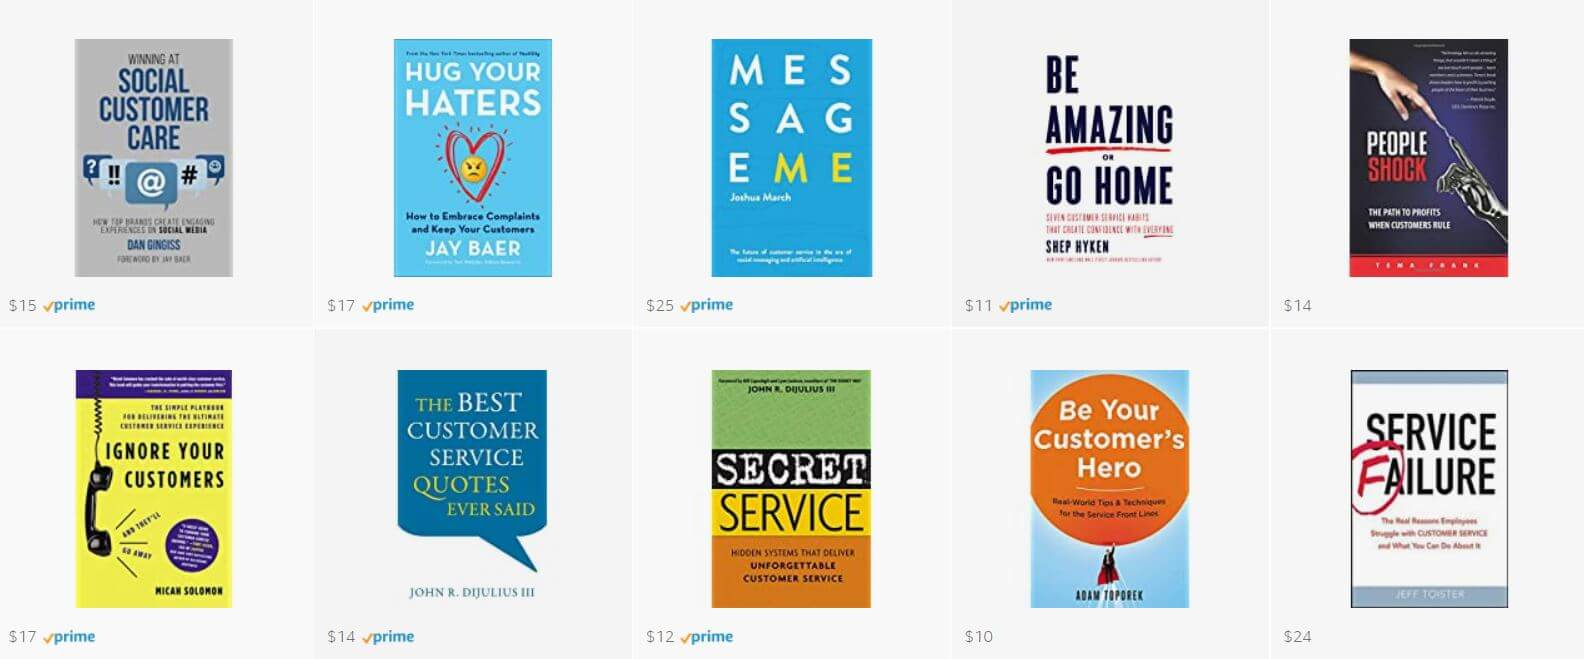 Customer service books